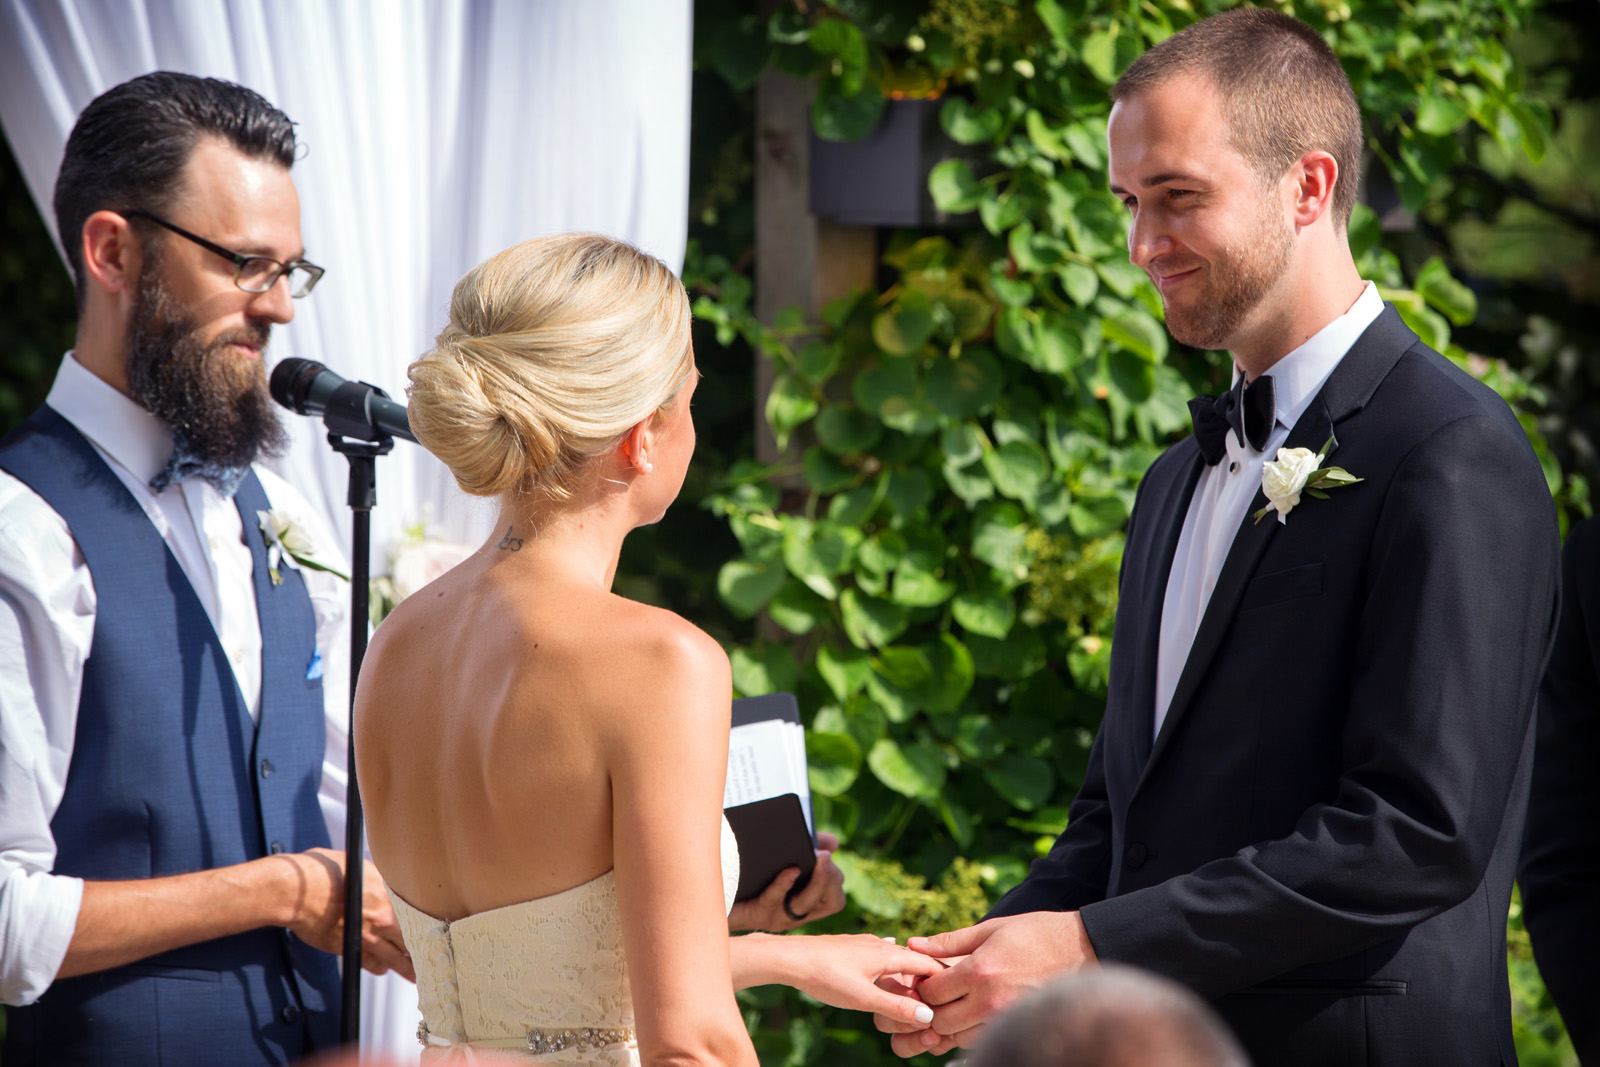 Groom placing ring on brides fingers at outdoor wedding ceremony